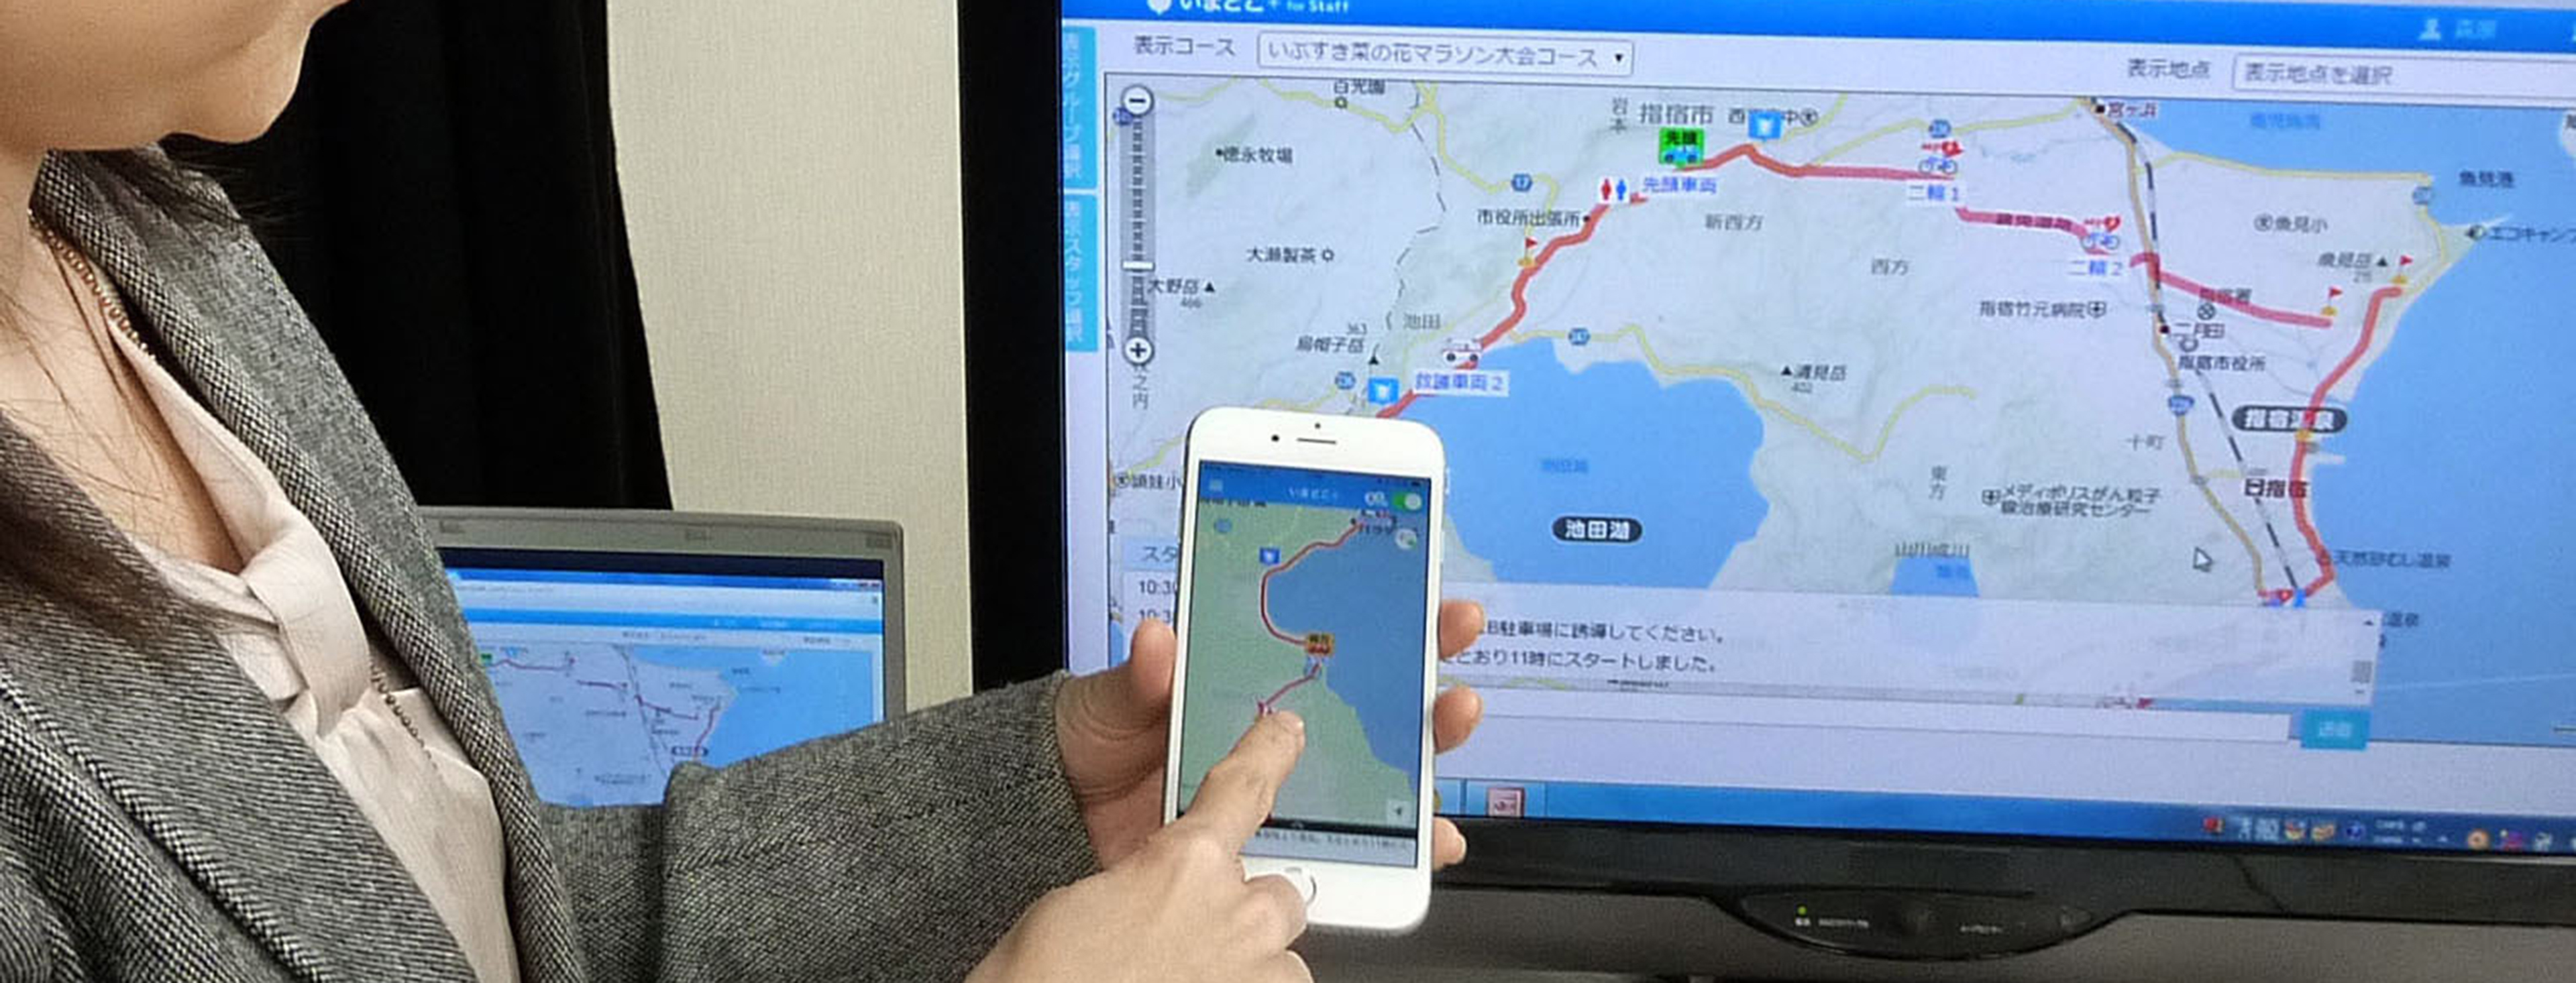 NTT unveils system to locate workers' whereabouts